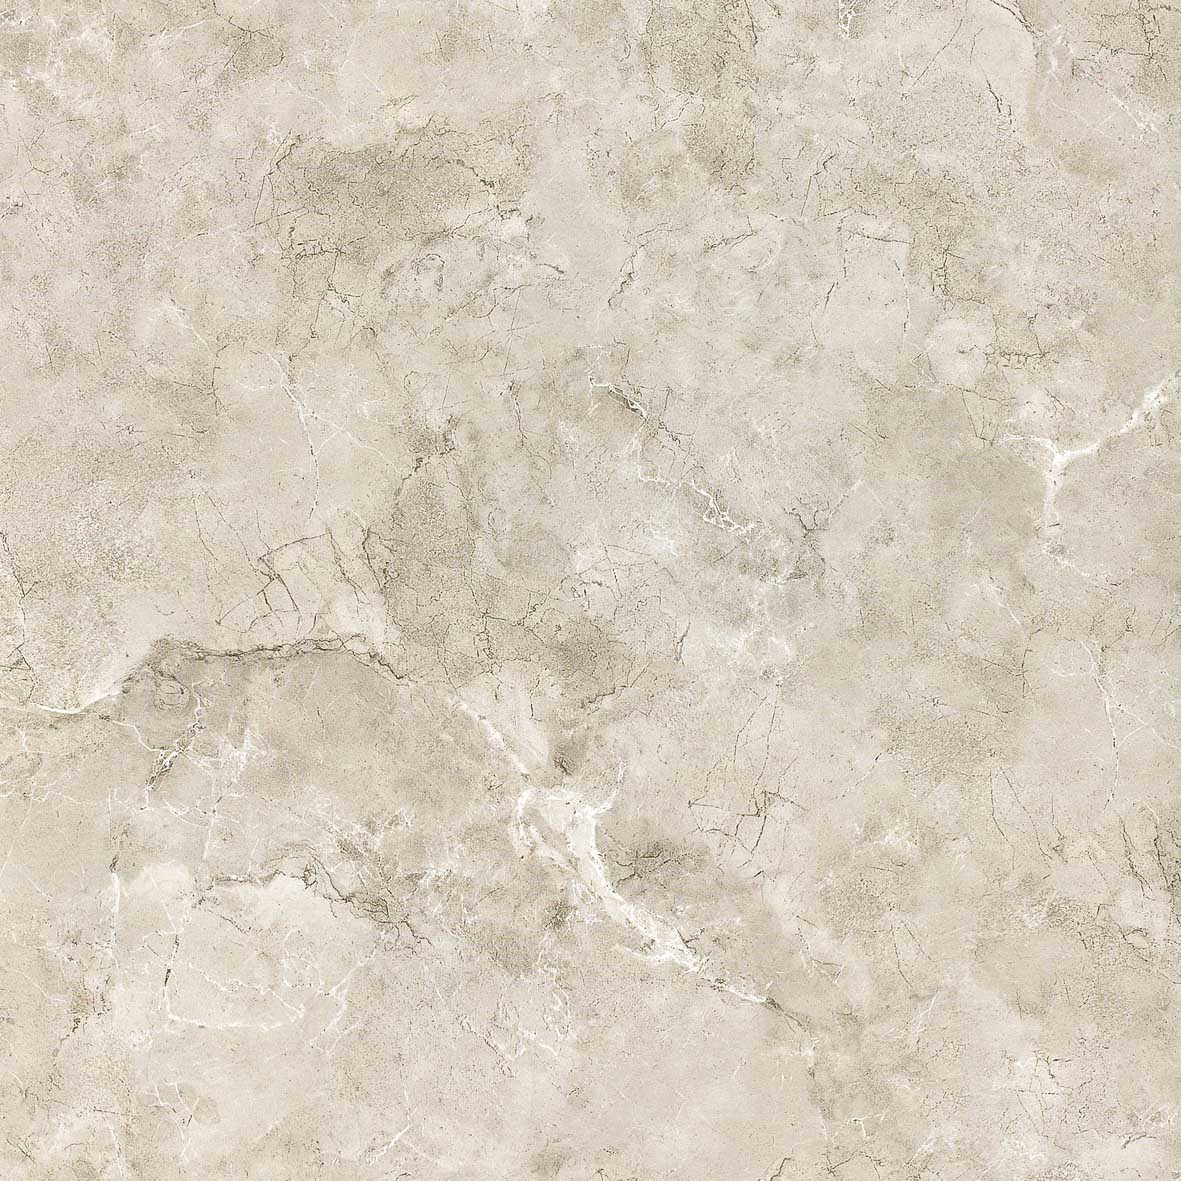 China Building Material Floor Tile, Portugal Gray Marble Design ...